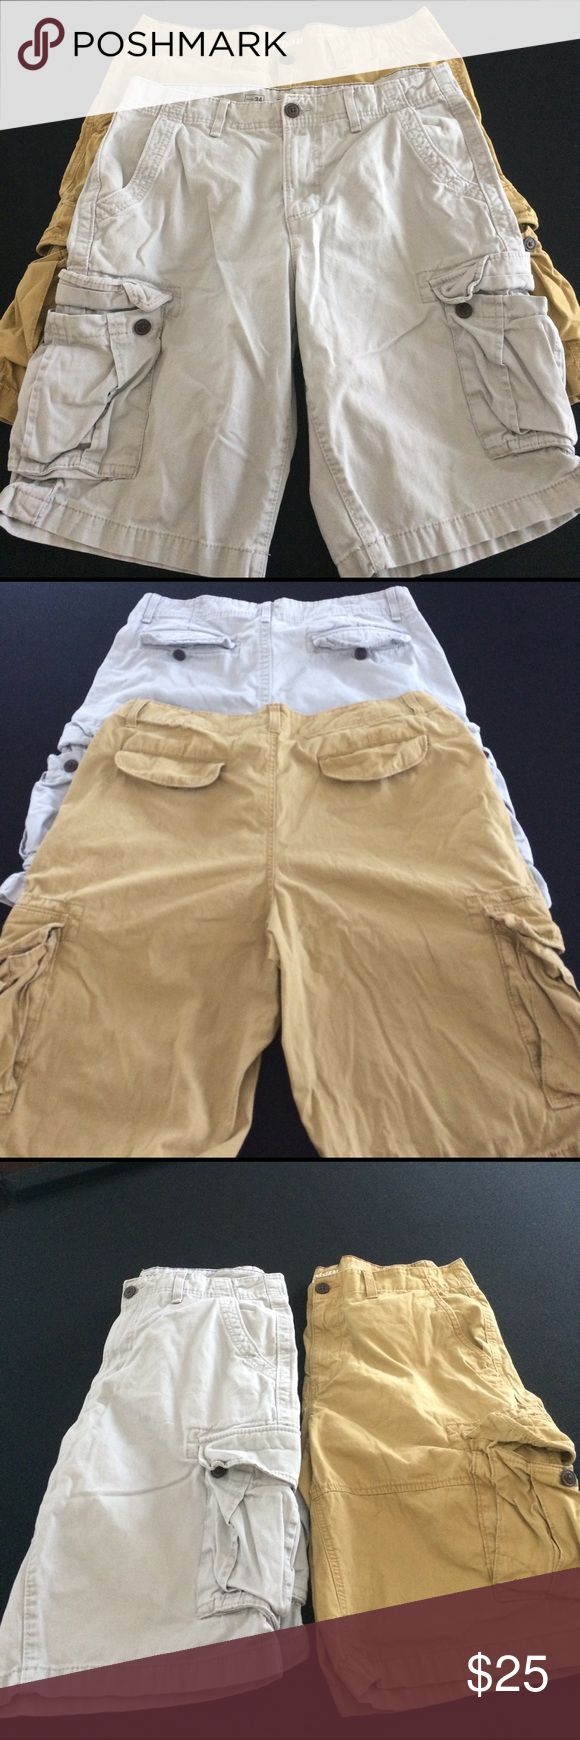 Men's Cargo Short Bundle 2 great condition cargo shorts by urban pipeline, size 34 waist, gray and mustard color. 100% cotton Urban Pipeline Shorts Cargo